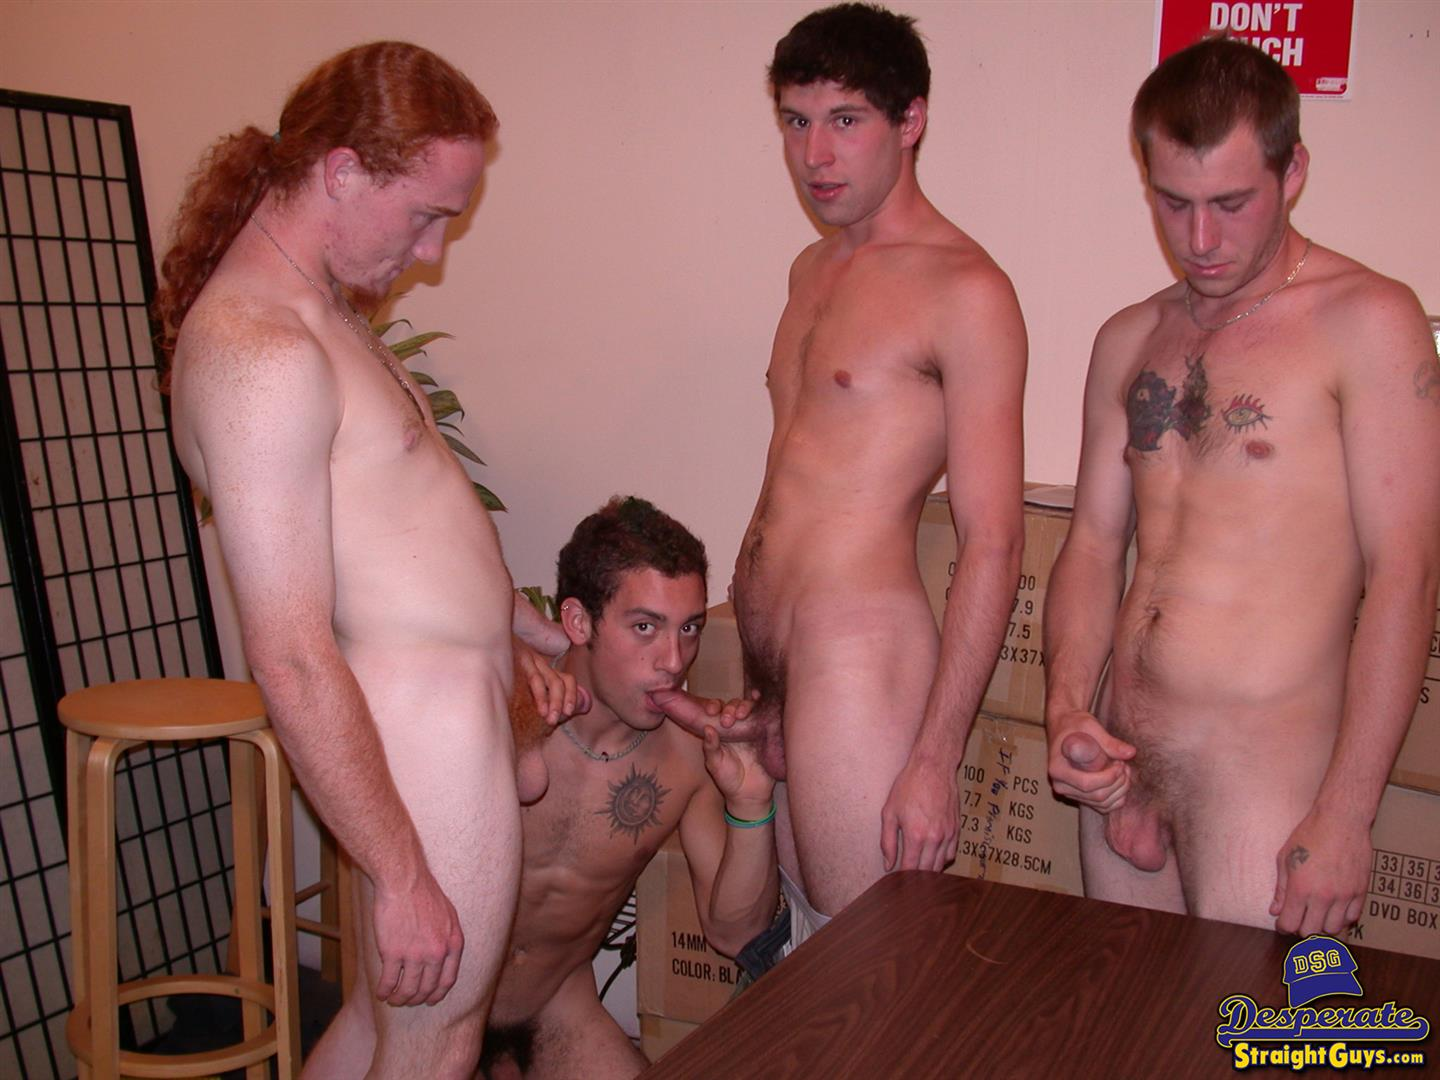 Hot Guys Fucking Each Other